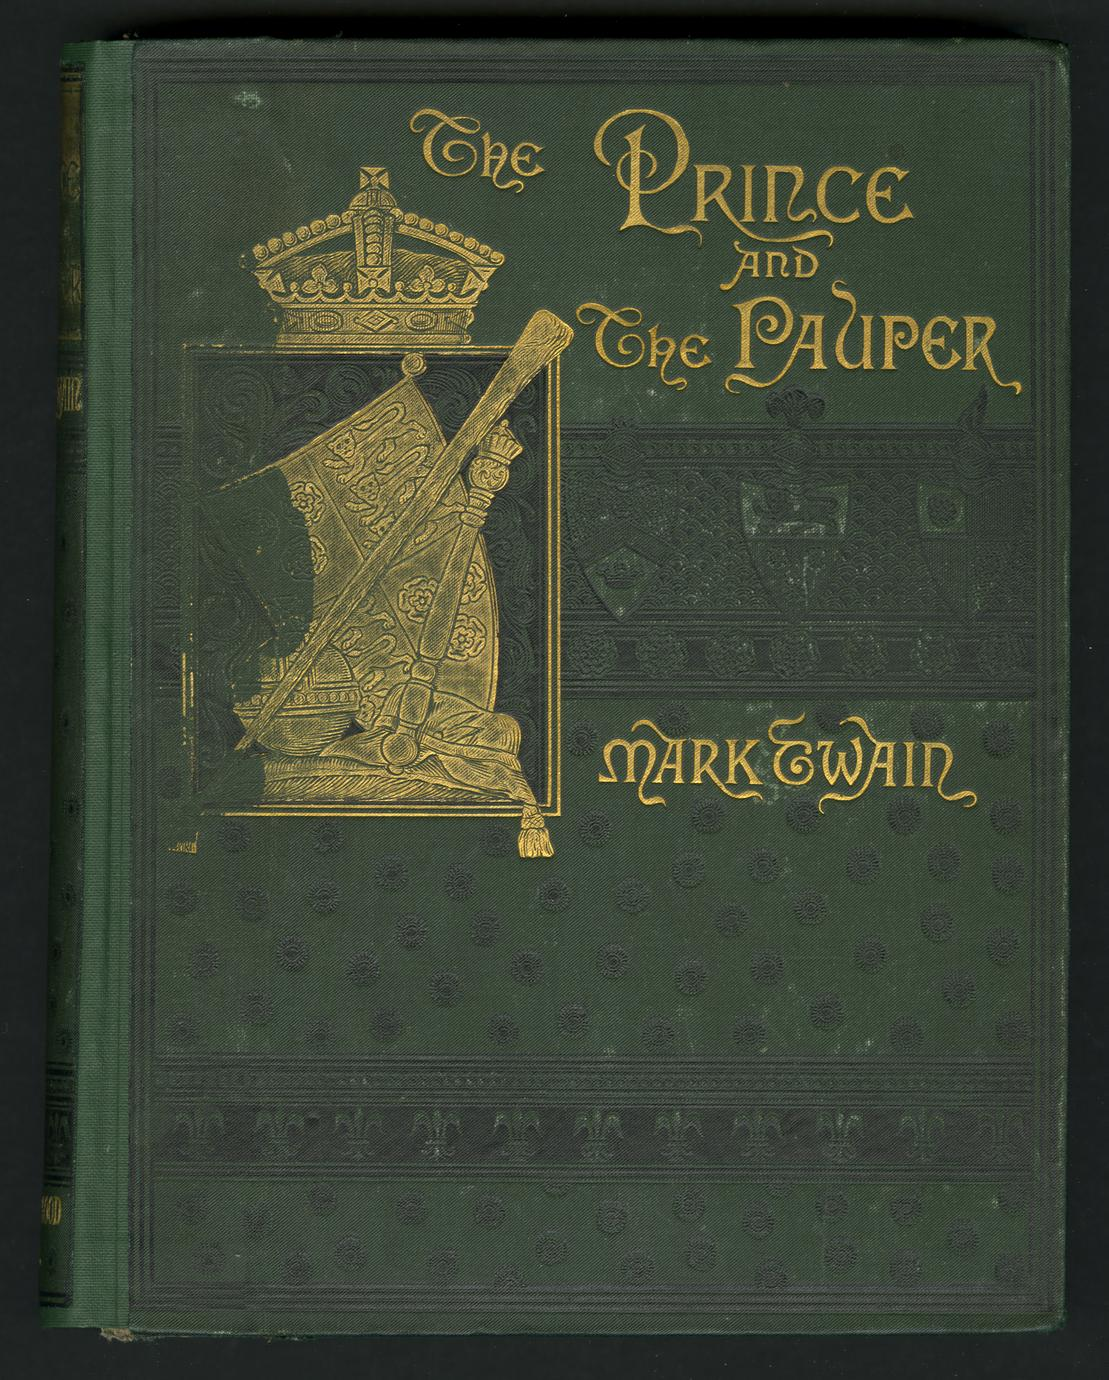 The prince and the pauper (1 of 2)